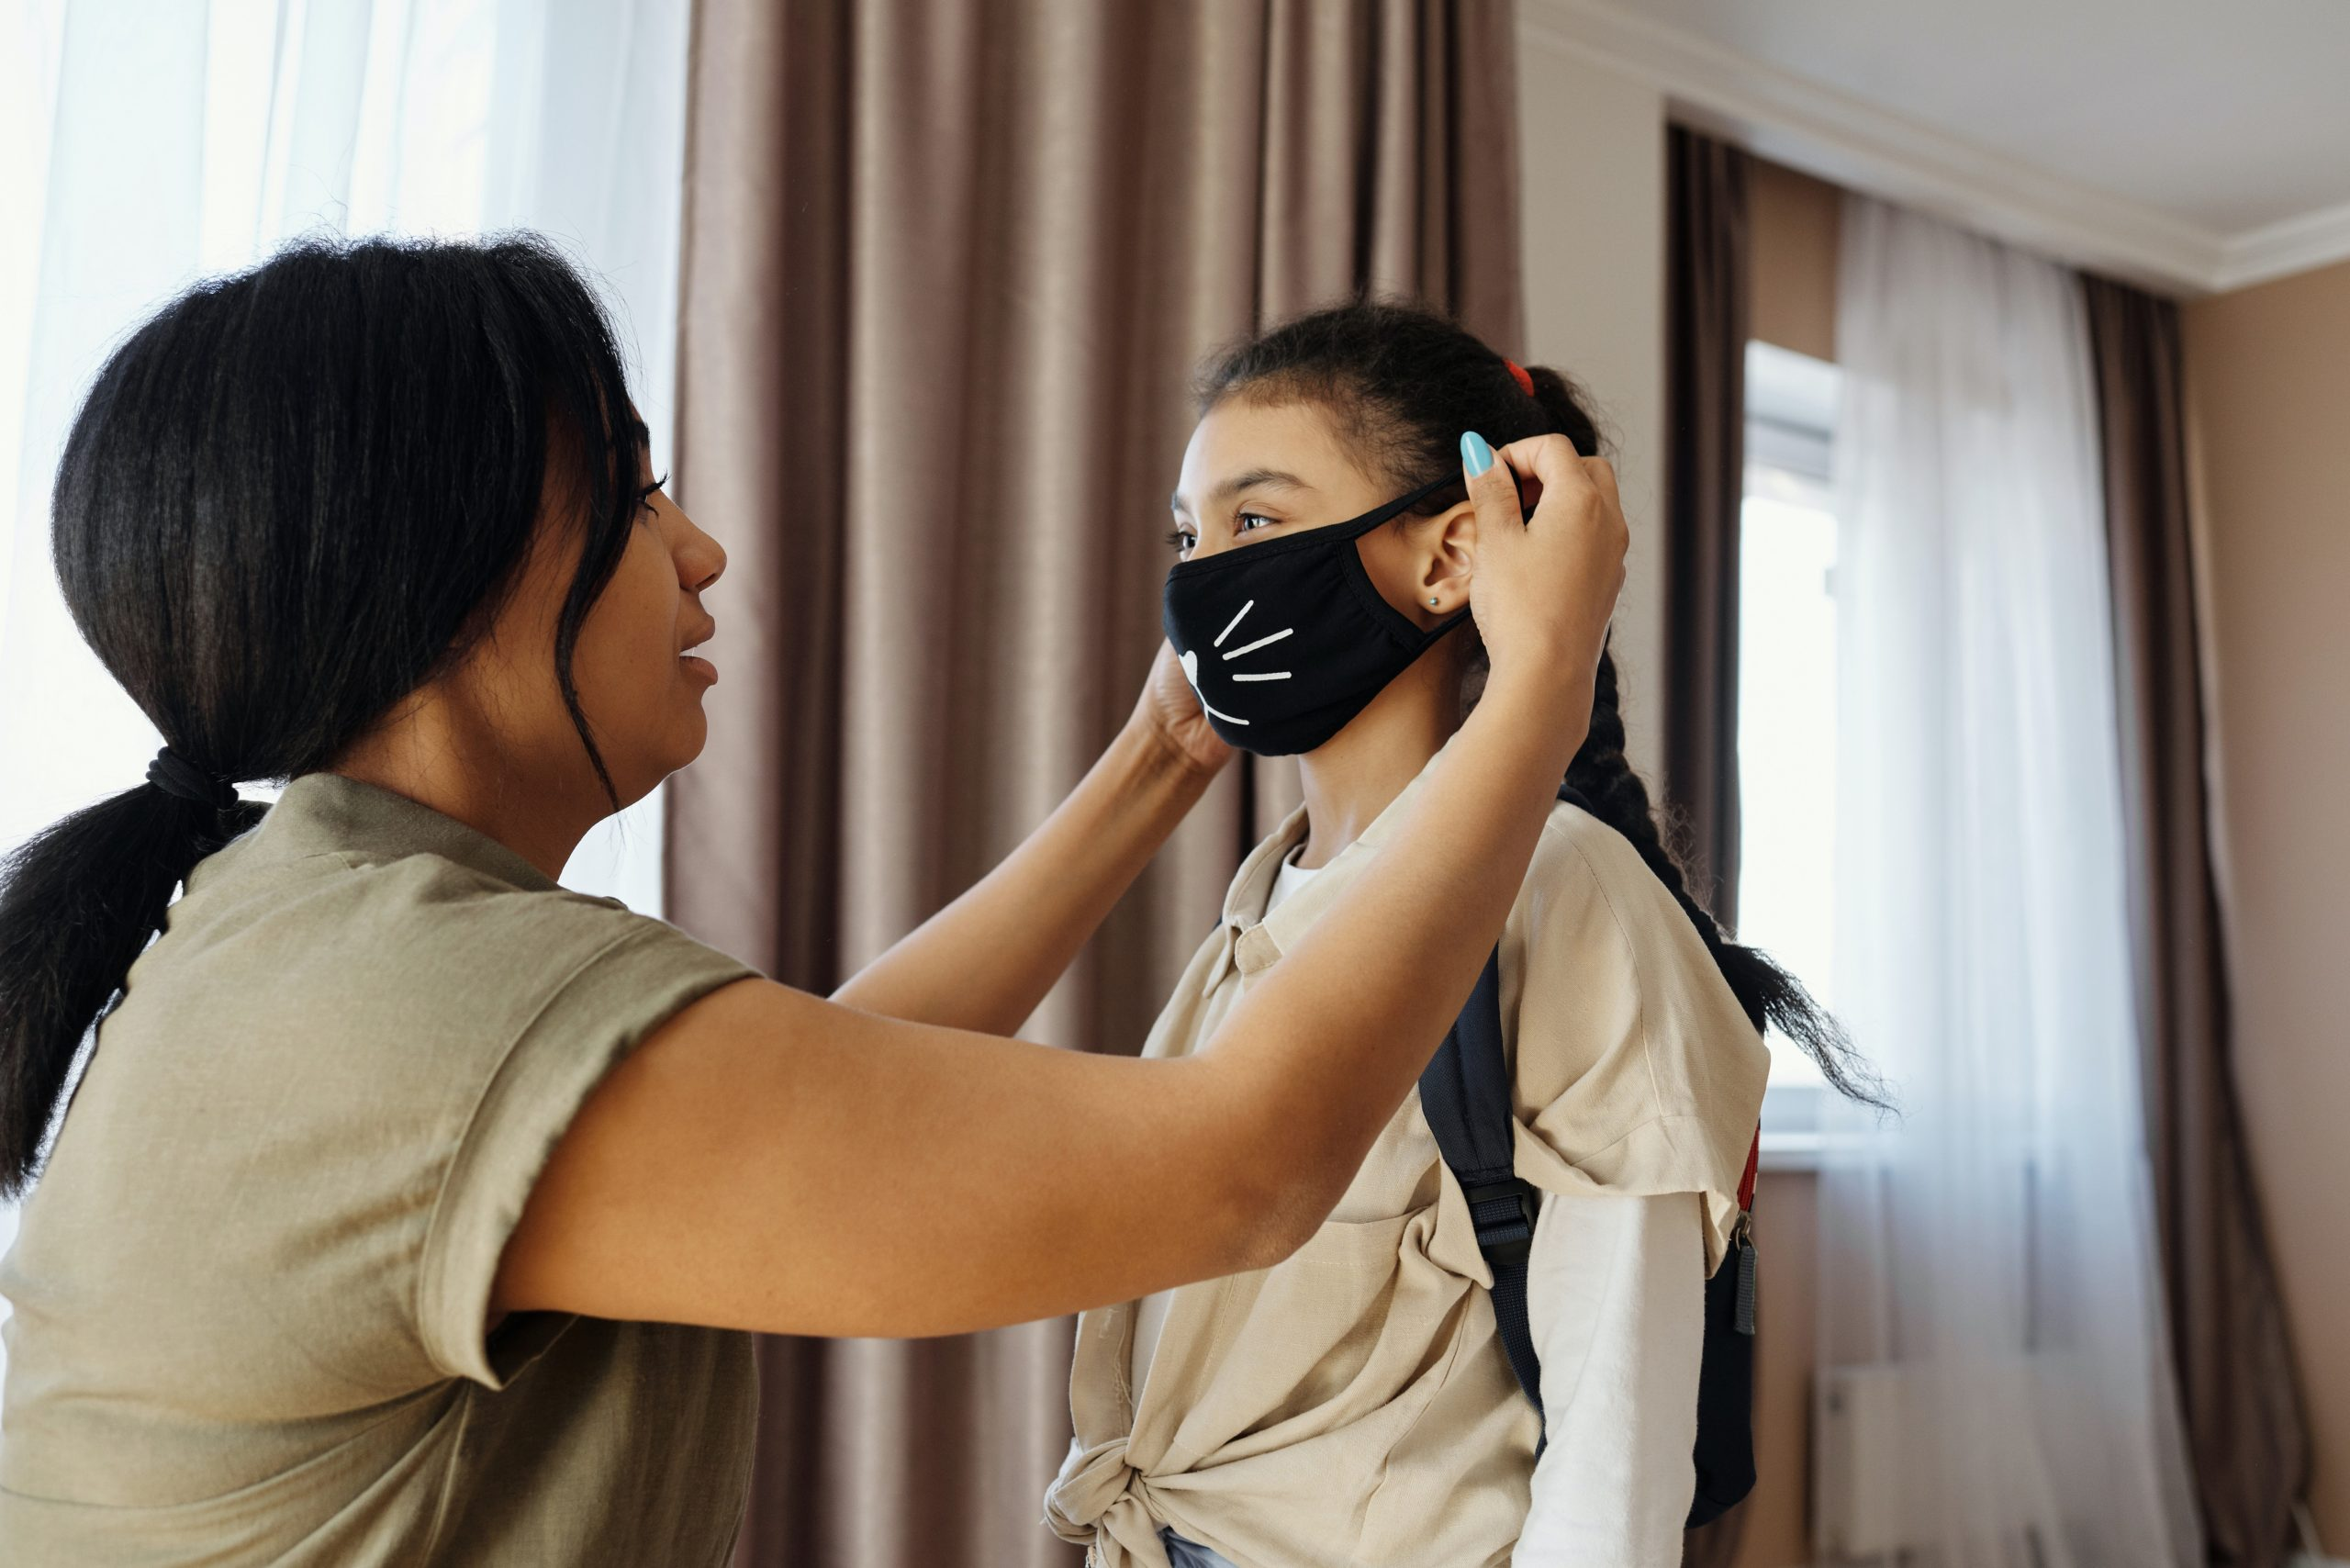 Mother putting COVID-19 mask on daughter